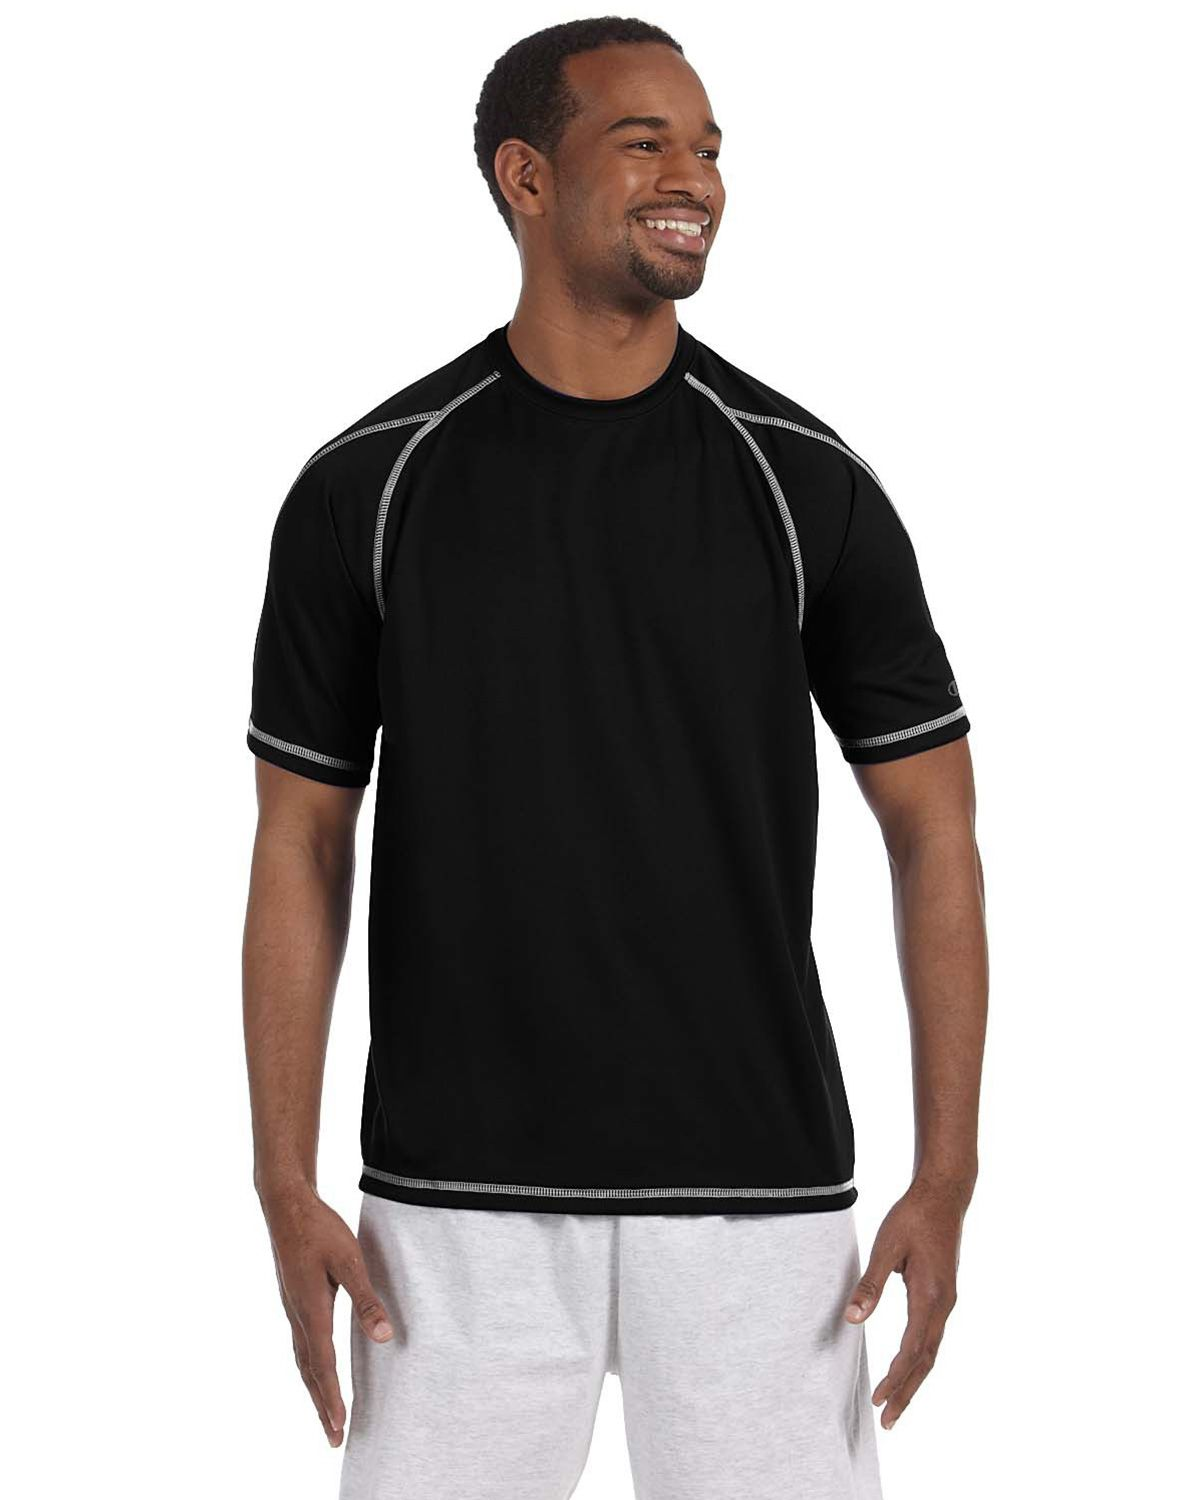 Champion T2057 Double Dry T Shirt - Black - XL T2057